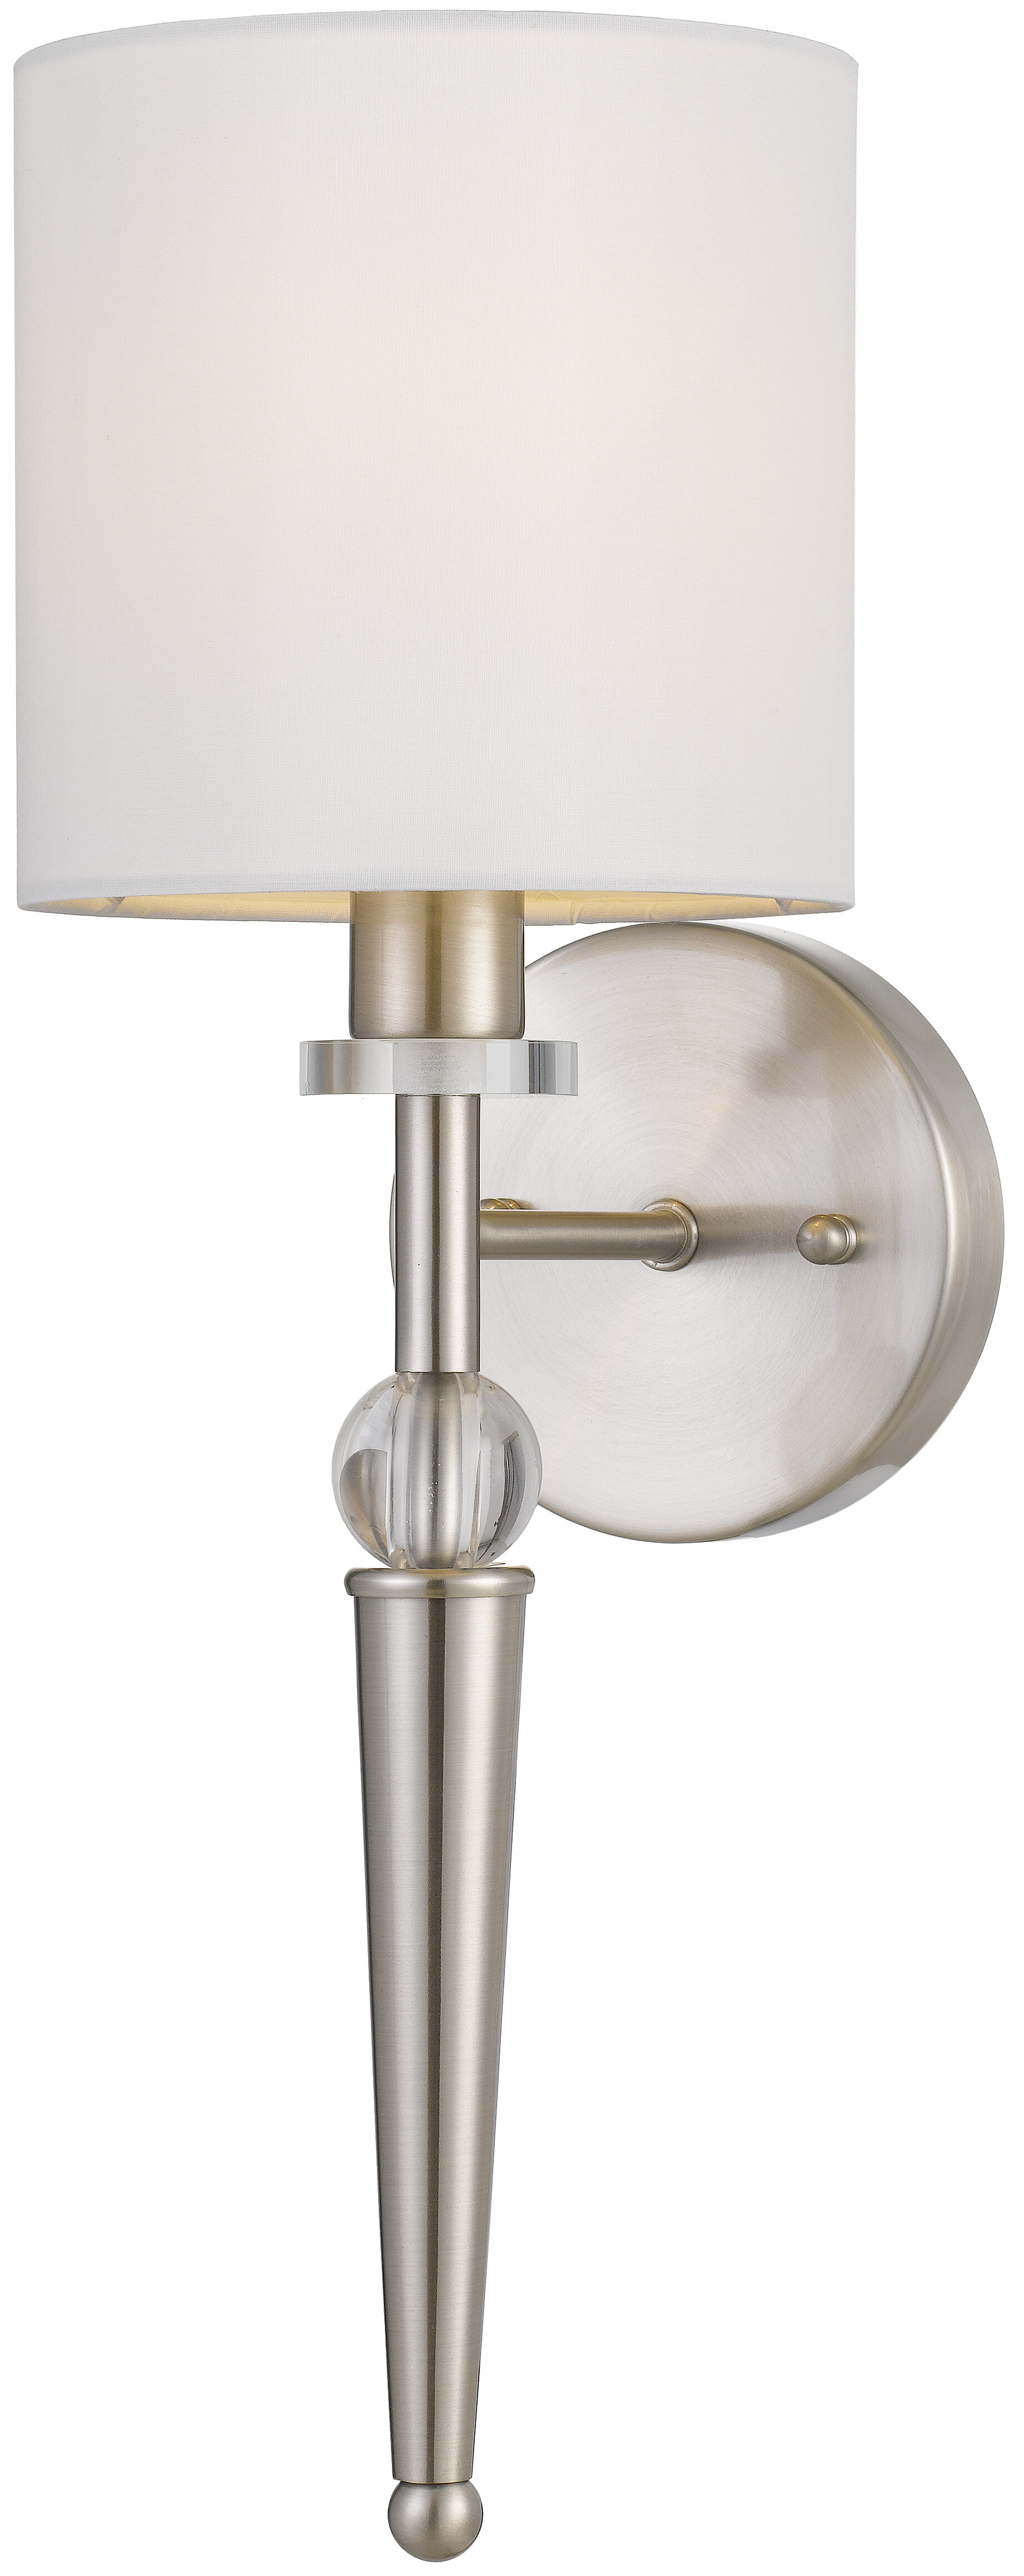 Crystal Wallchiere Wall Sconces You Ll Love In 2021 Wayfair